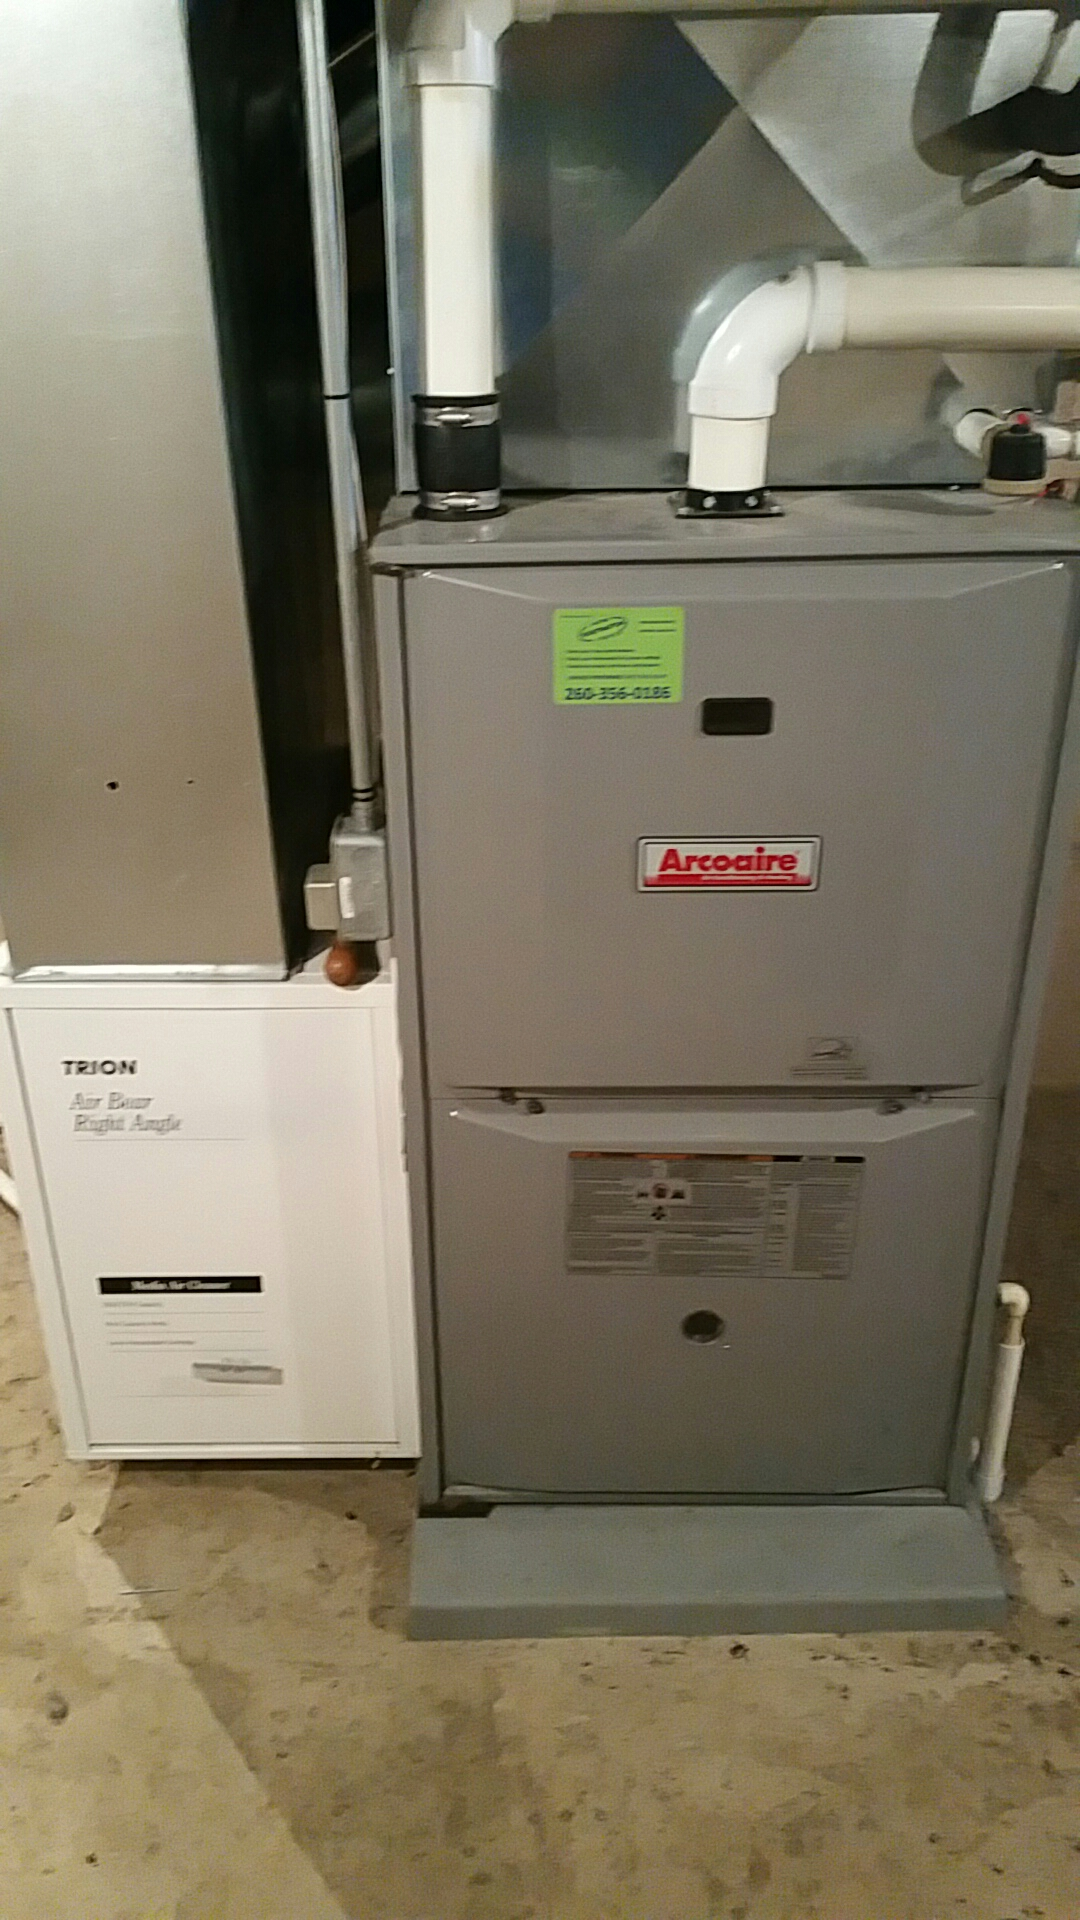 Columbia City, IN - Maintenance on Arcoaire gas furnace.